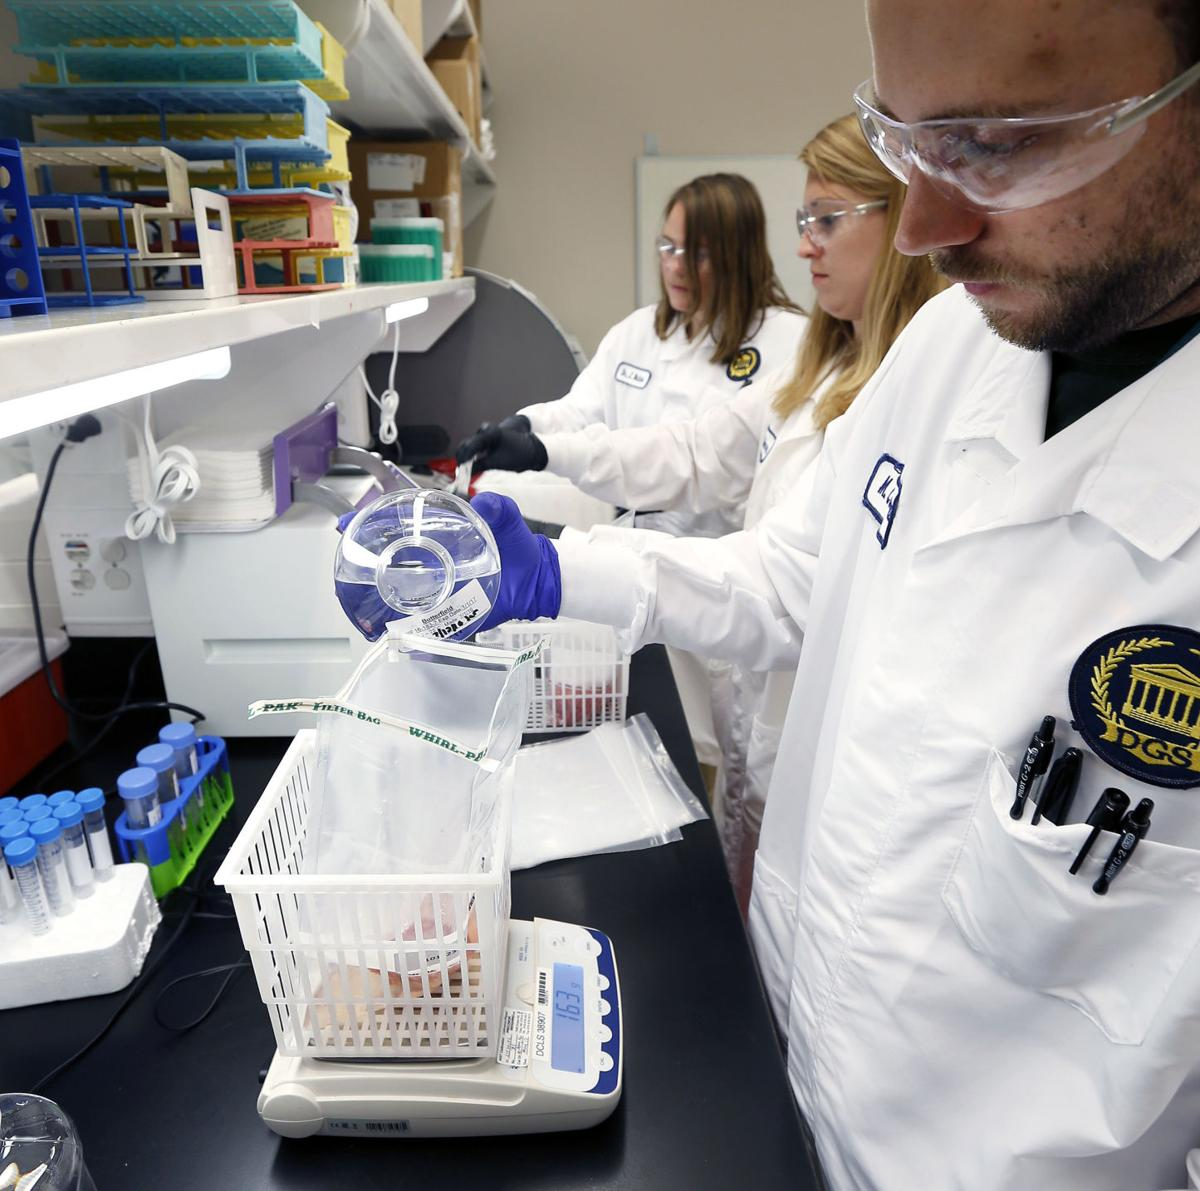 Virginia lab testing DNC food for contamination | State ...